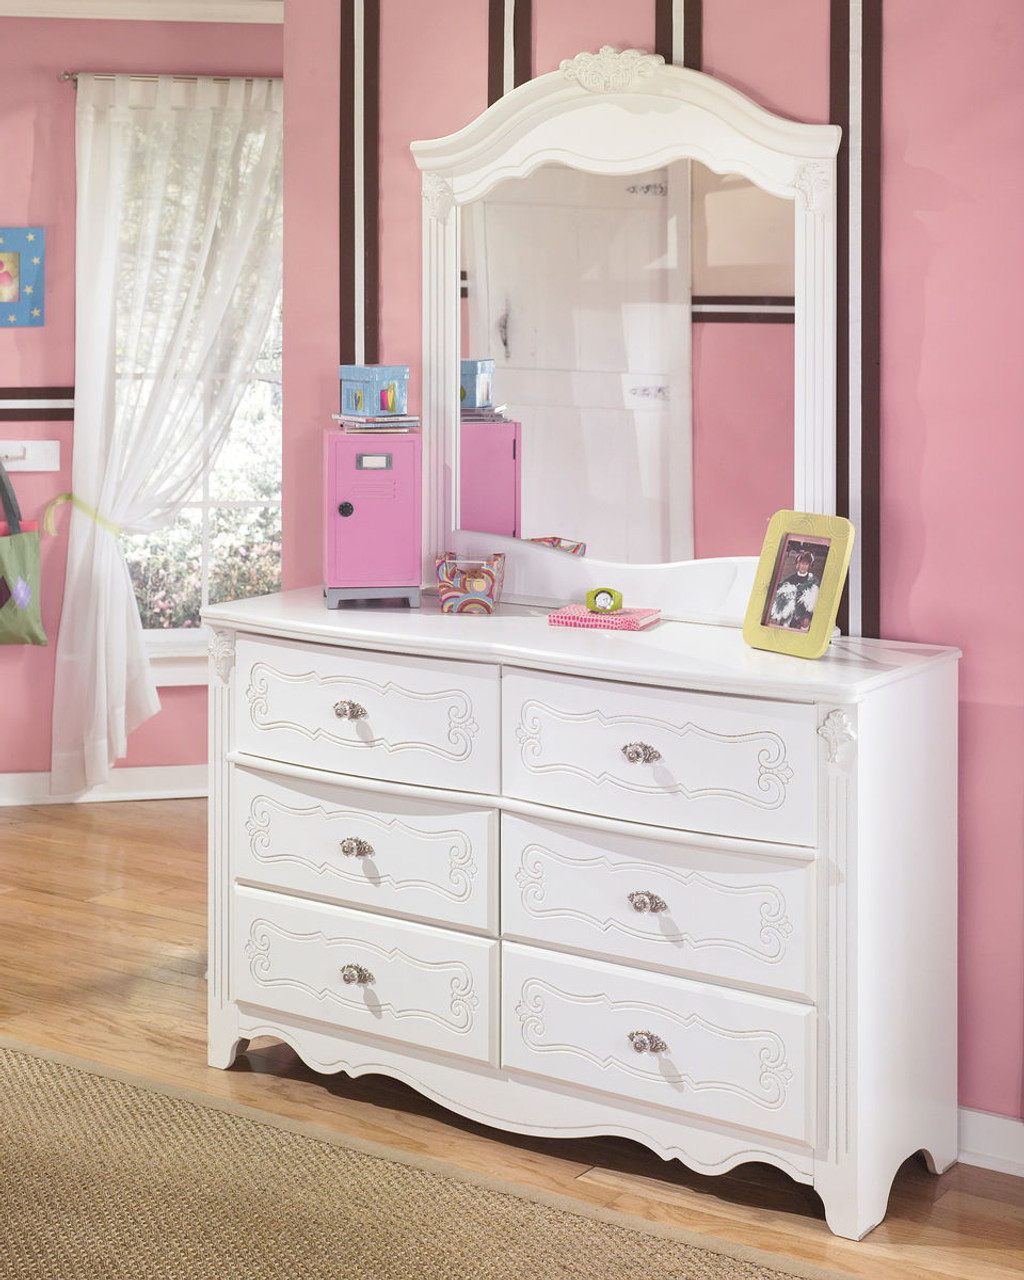 Exquisite White Dresser Mirror On Sale At American Furniture Of Slidell Serving Slidell La